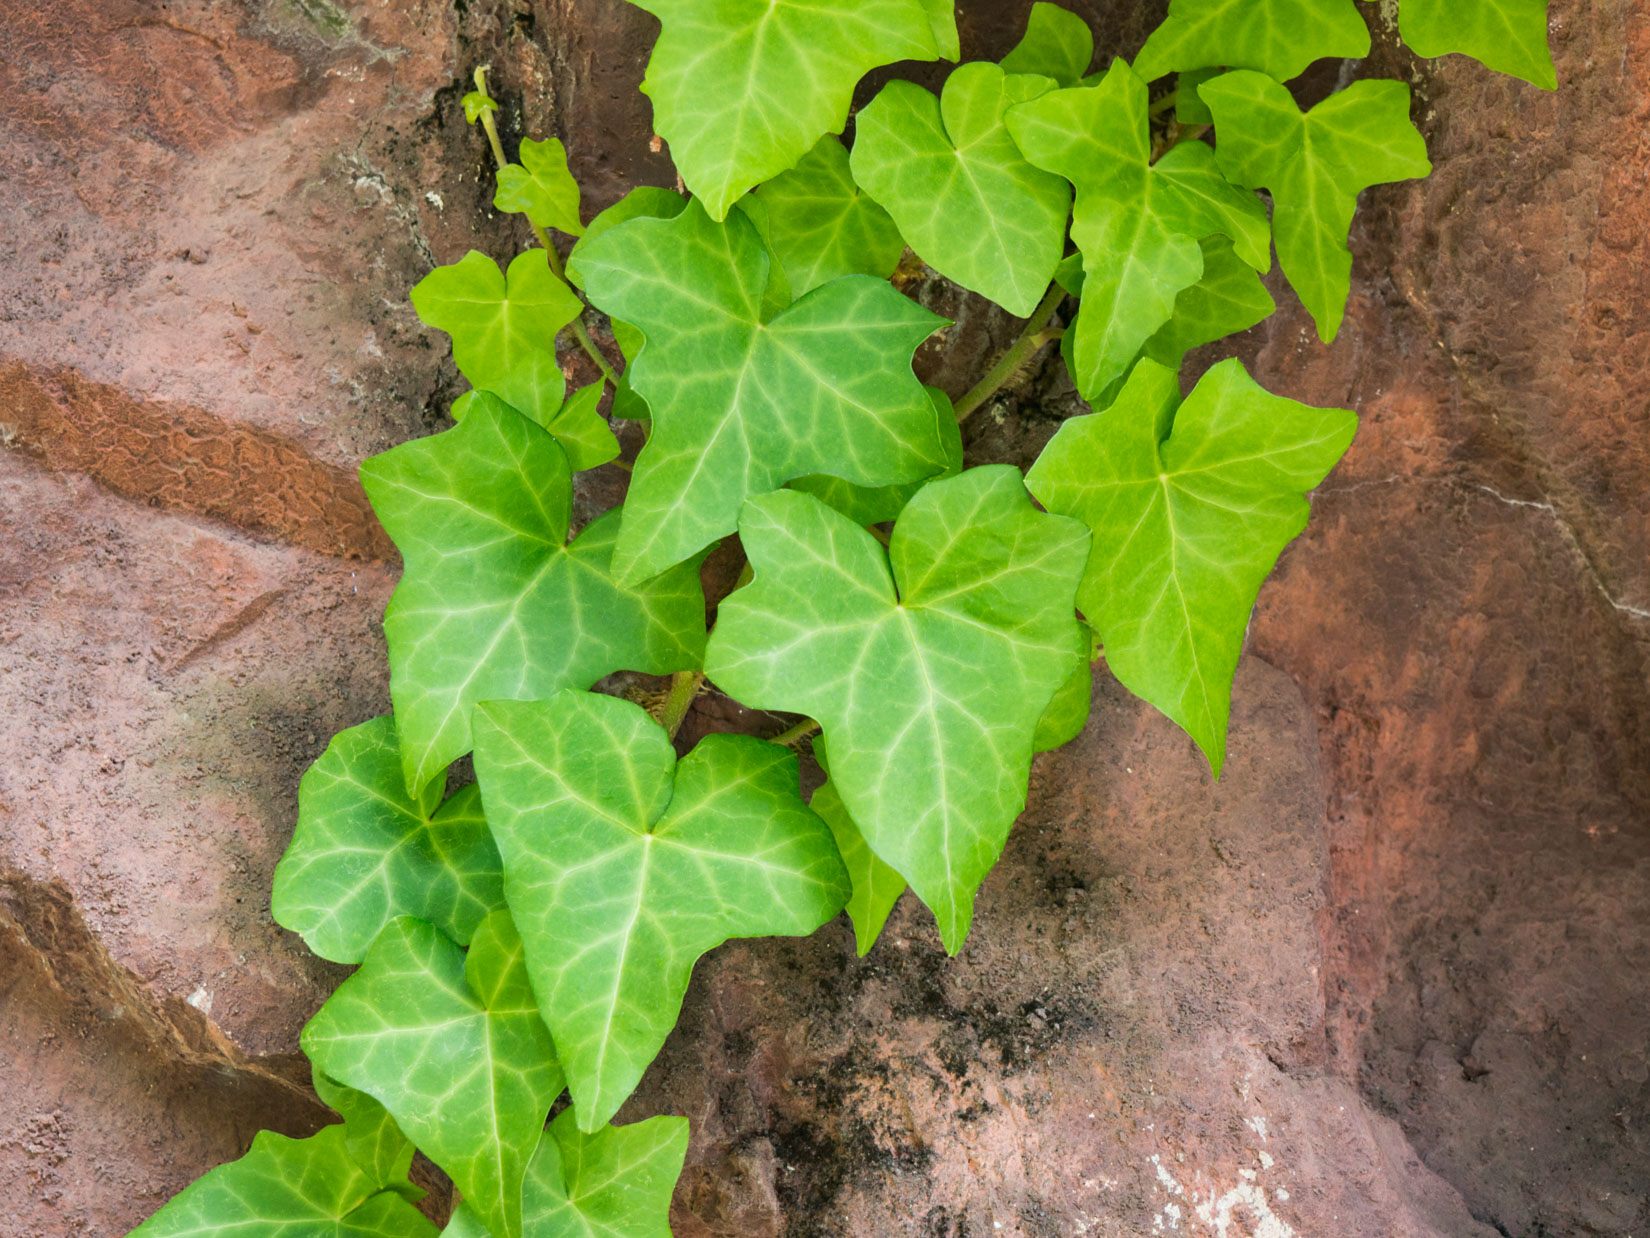 Green Leaves on Rocks